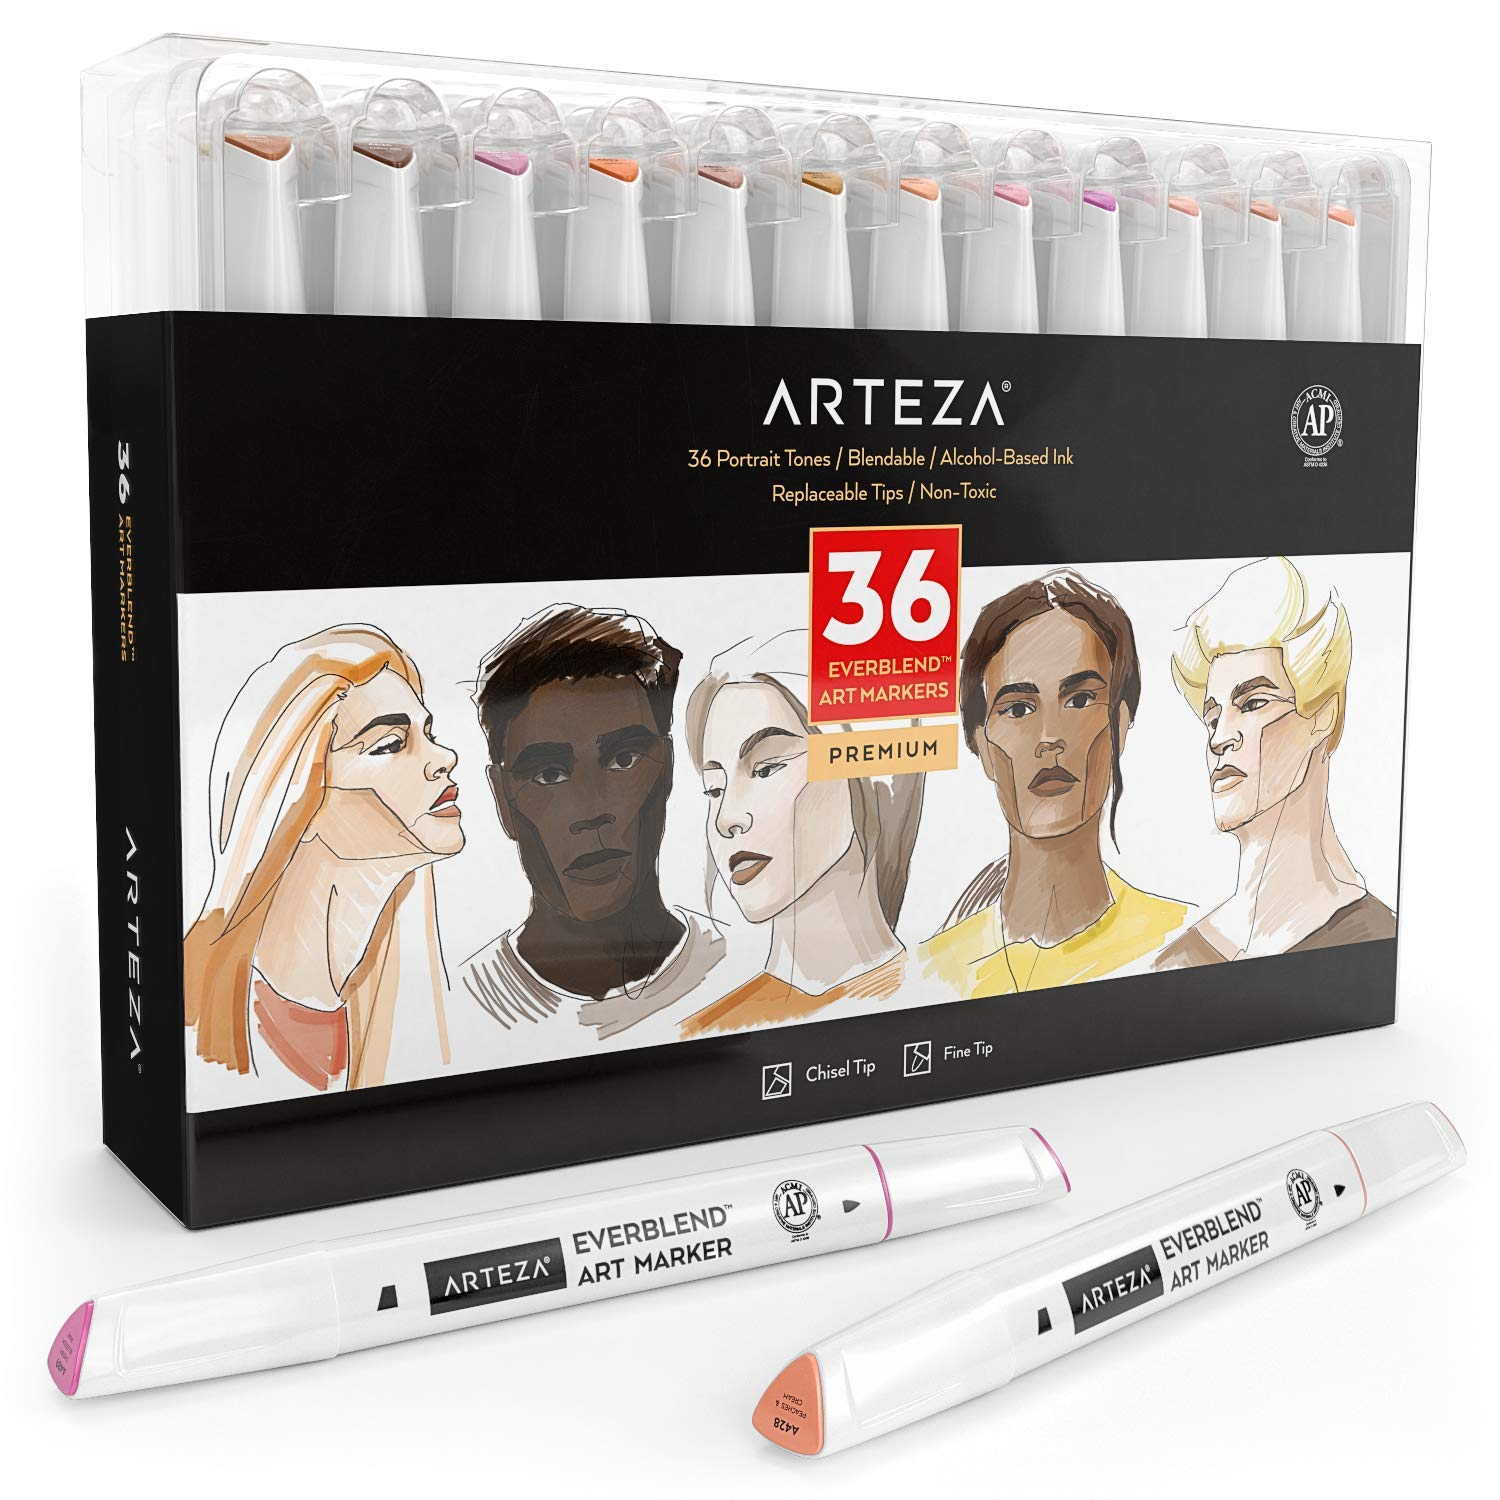 ARTEZA Everblend Skin Tone Art Markers, Set of 36 Colors, Alcohol Based Sketch Markers with Dual Tips (Fine and Broad Chisel) for Painting, Coloring, Sketching and Drawing by ARTEZA